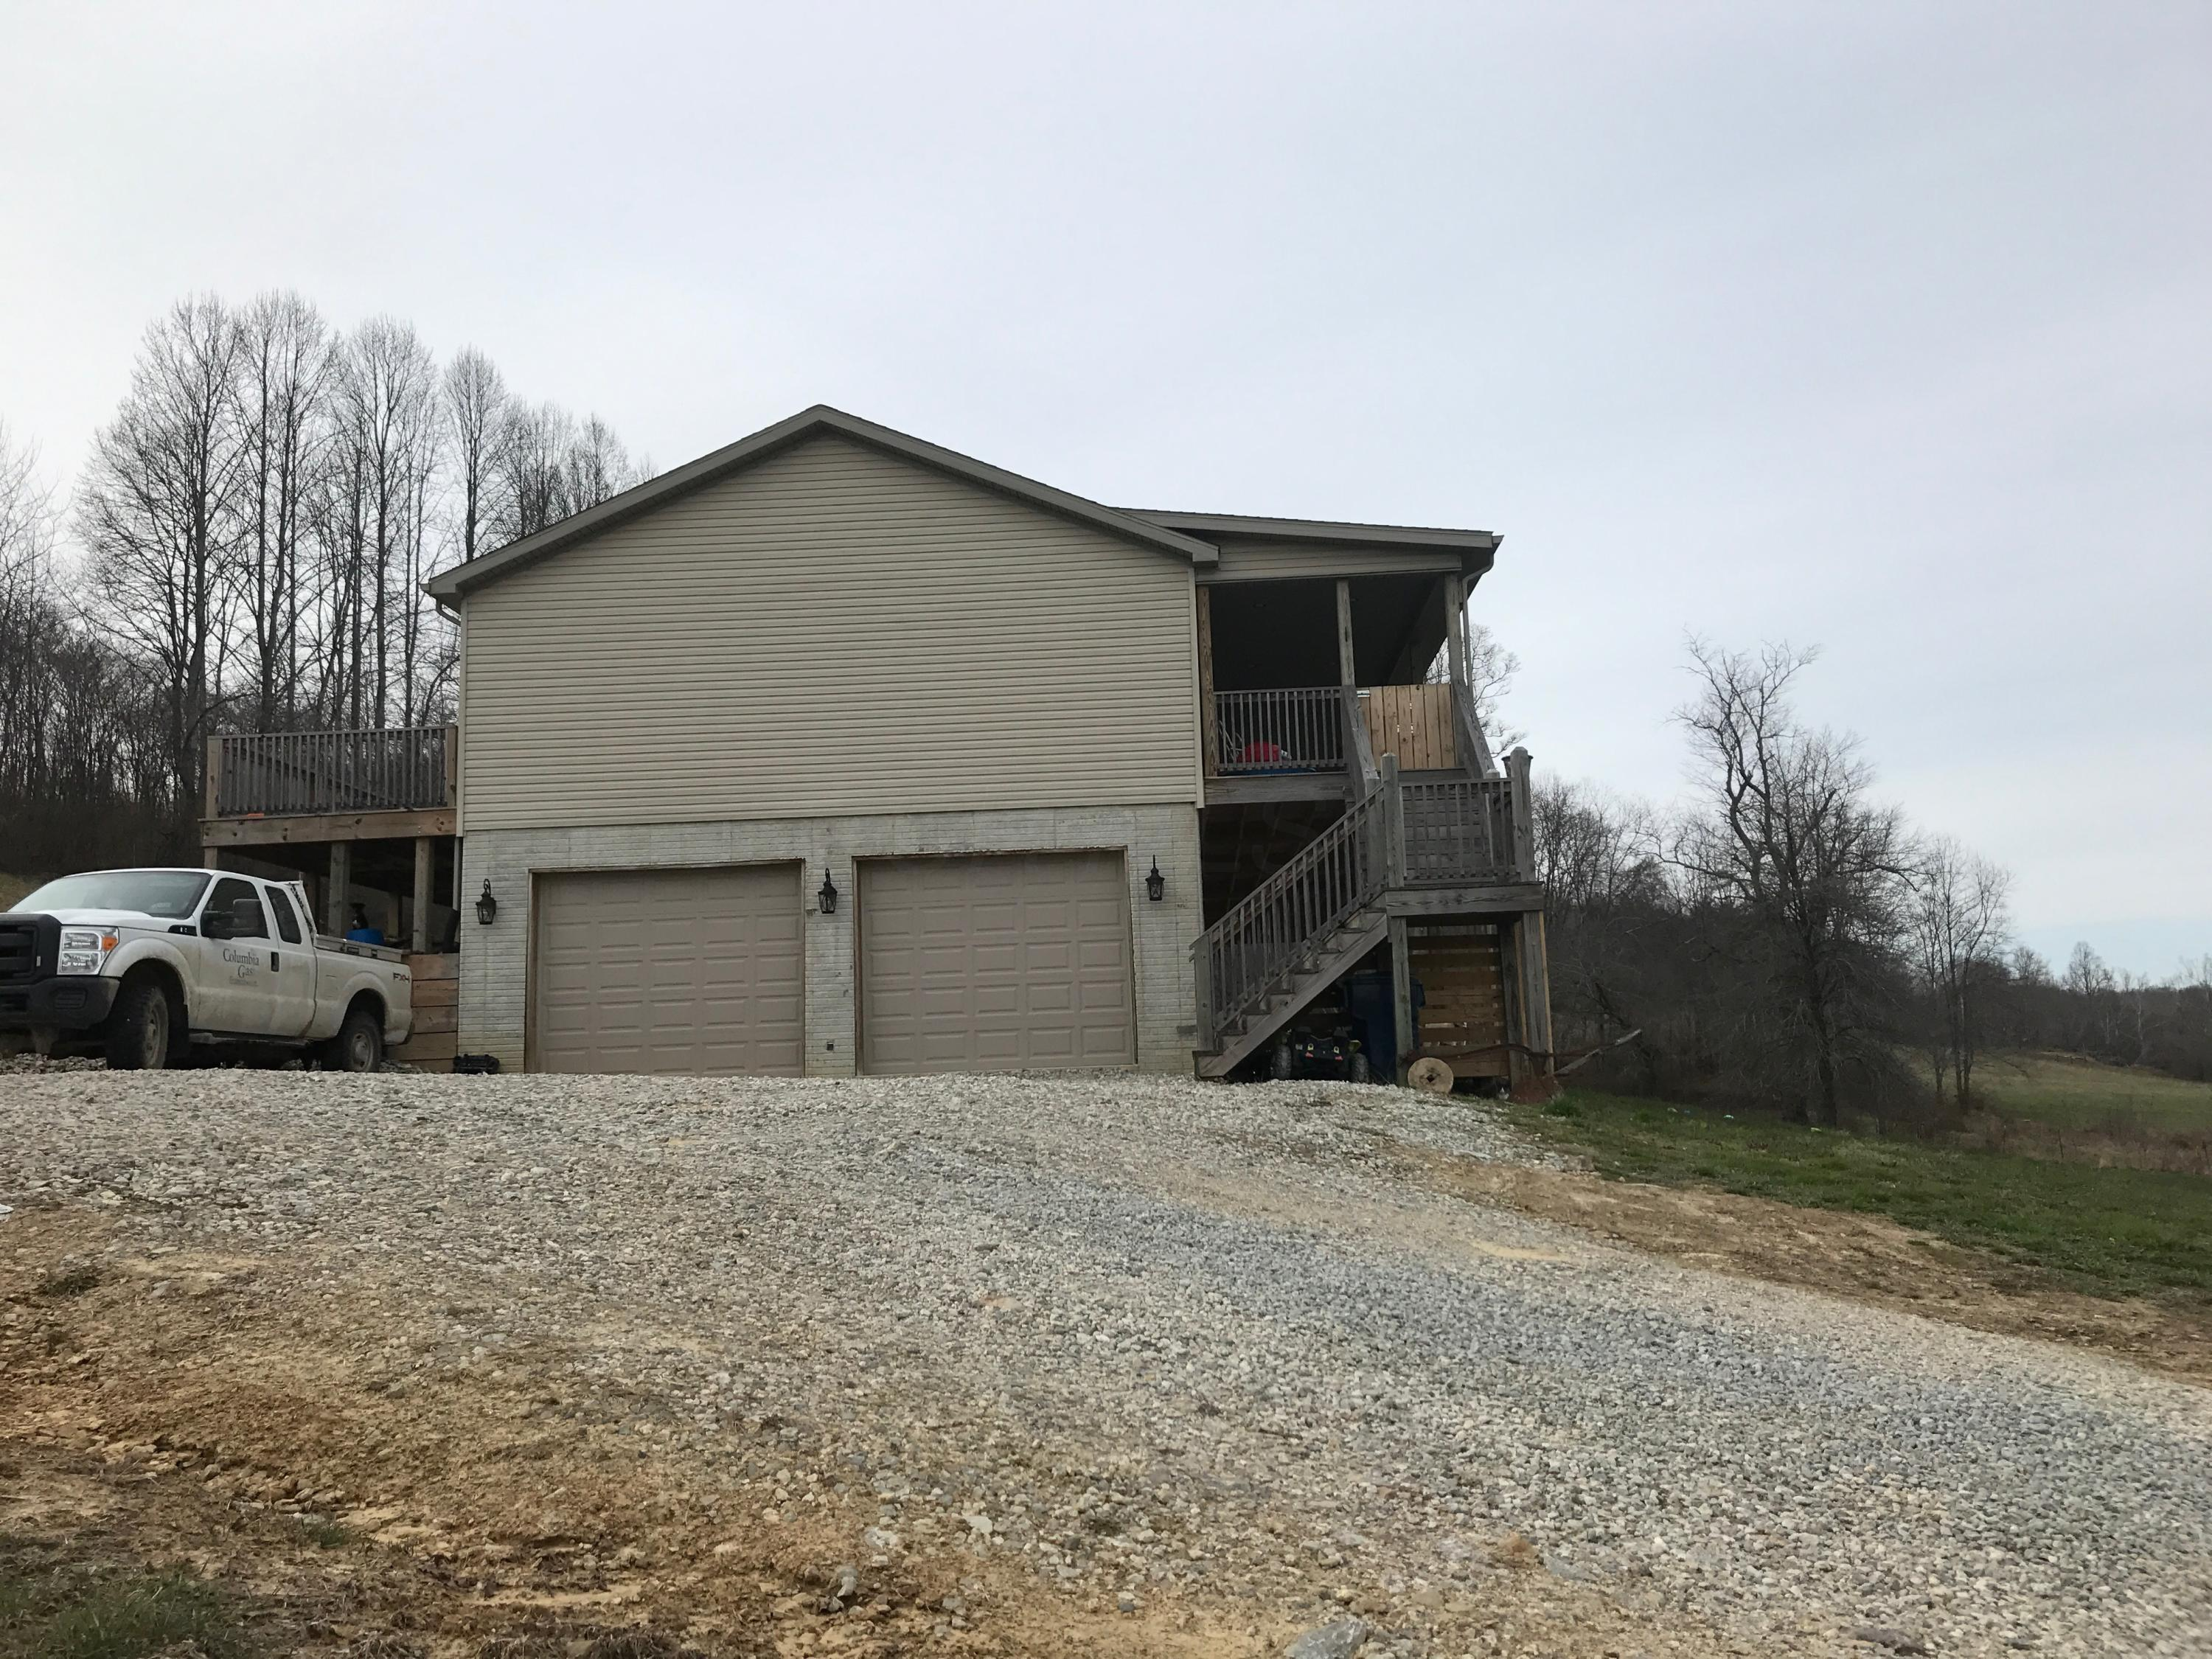 27891 Creola Road, Creola, Ohio 45622, 3 Bedrooms Bedrooms, ,2 BathroomsBathrooms,Residential,For Sale,Creola,218023210